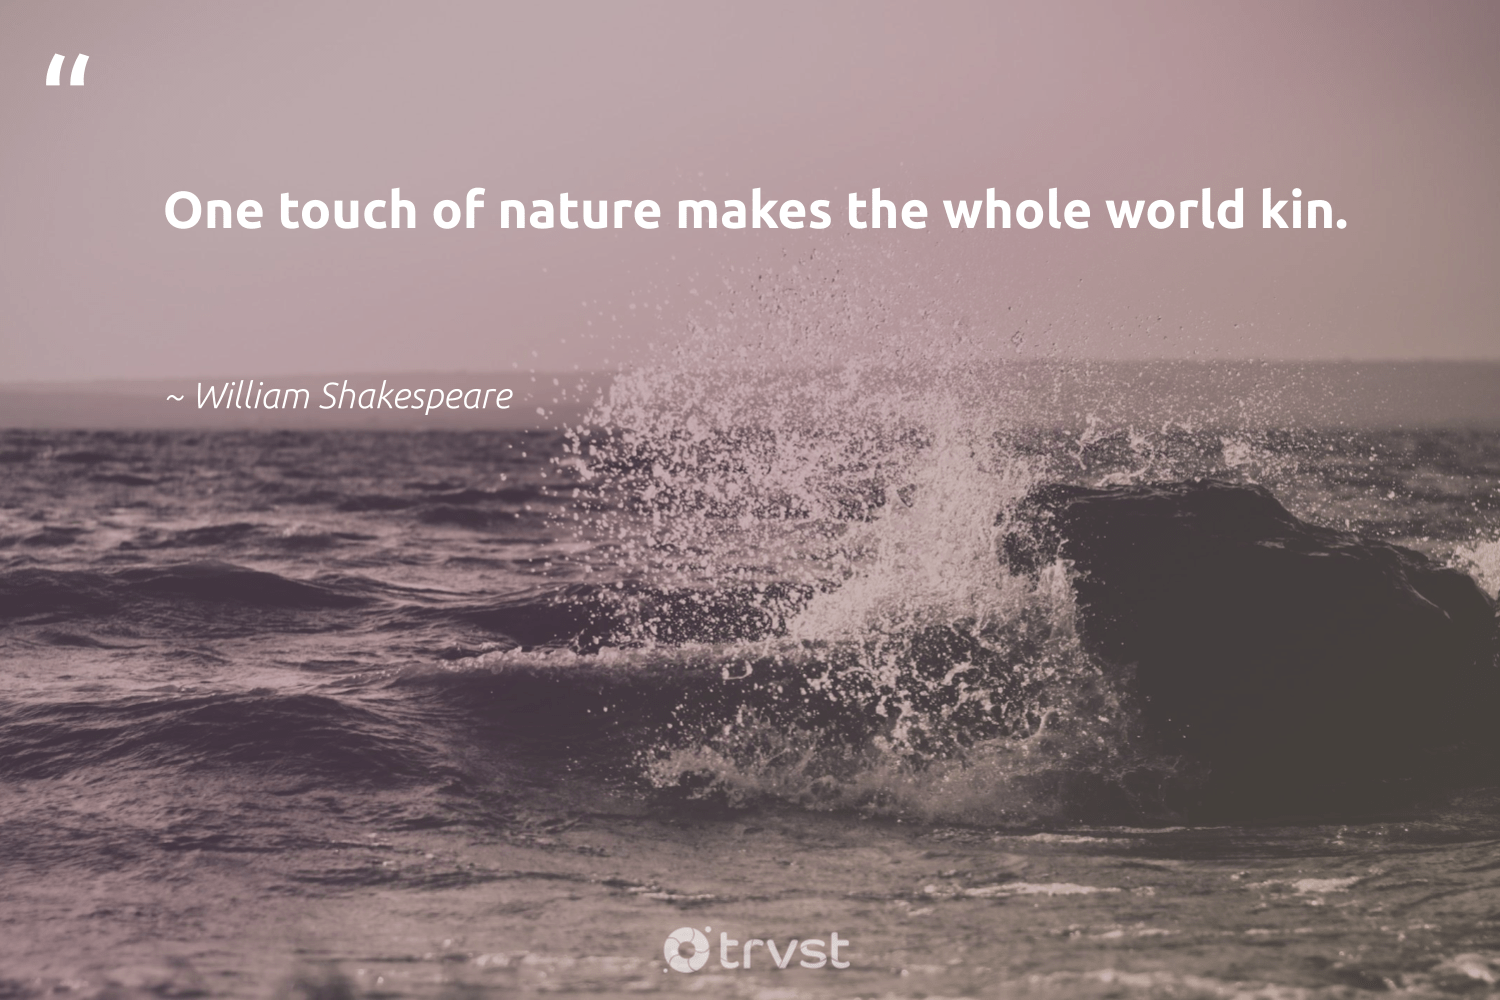 """""""One touch of nature makes the whole world kin.""""  - William Shakespeare #trvst #quotes #environment #nature #planet #volunteer #sustainable #dosomething #earth #eco #gogreen #dogood"""